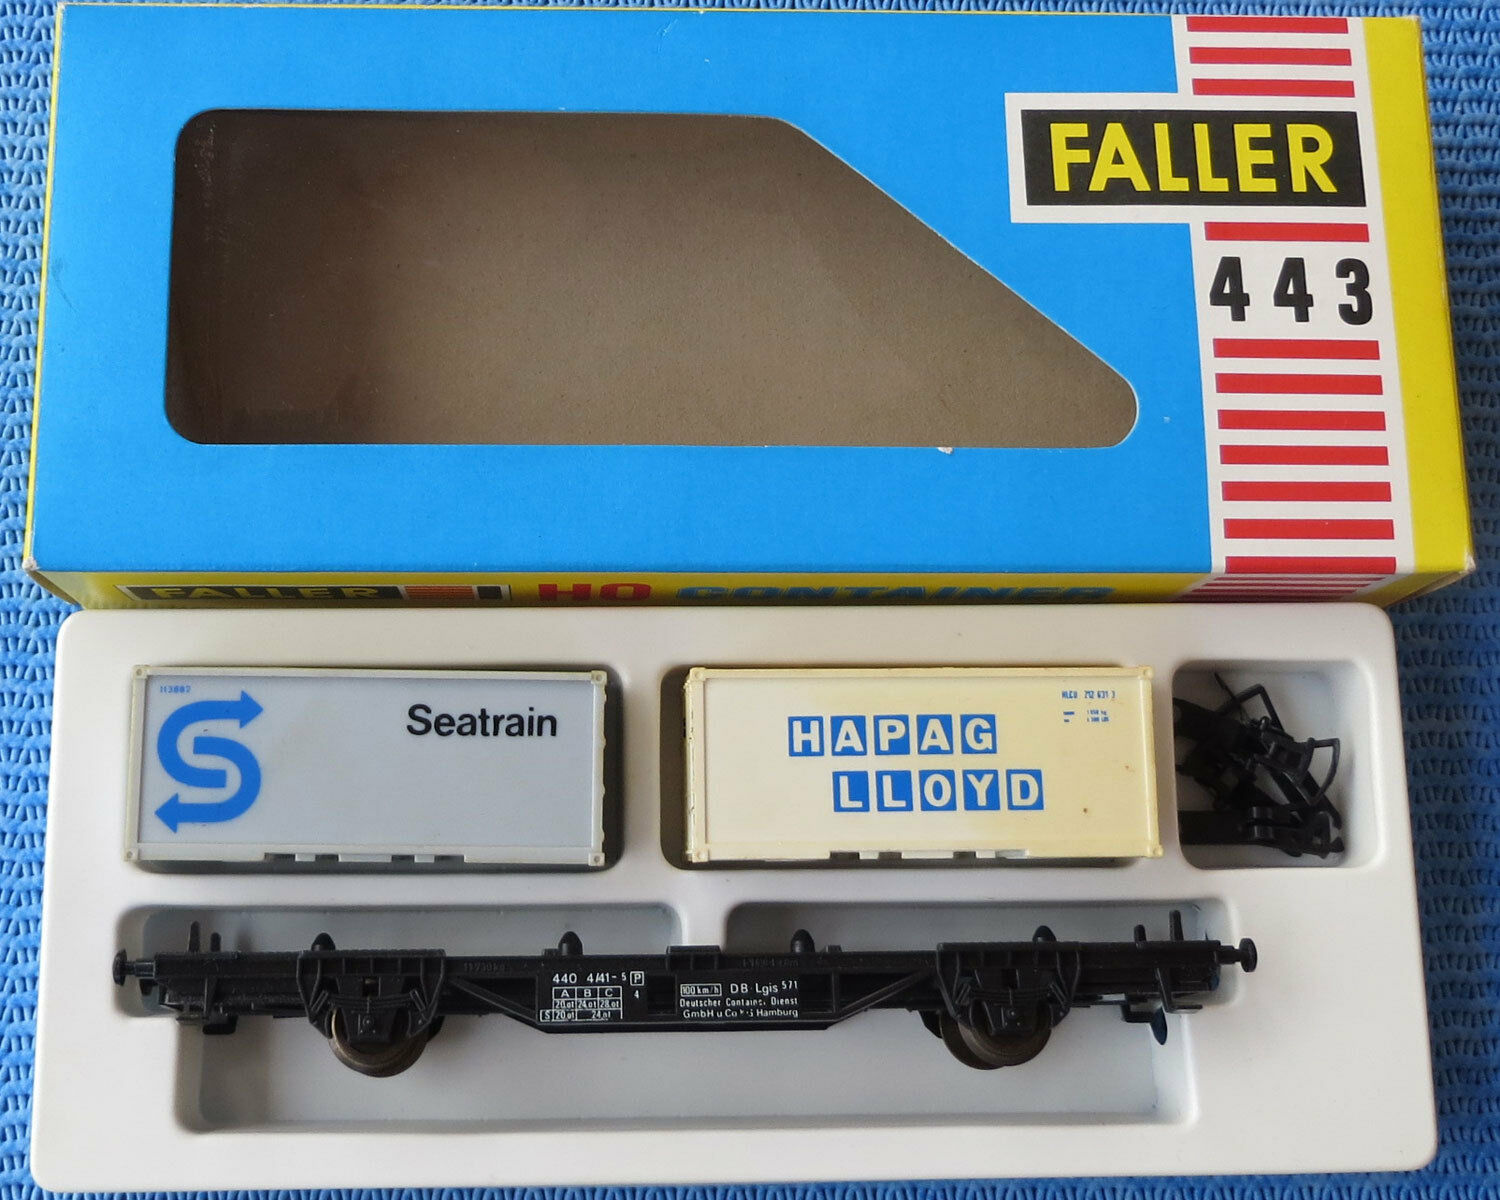 Faller AMS  443 --  Waggon mit Container  in OVP -- RAR -